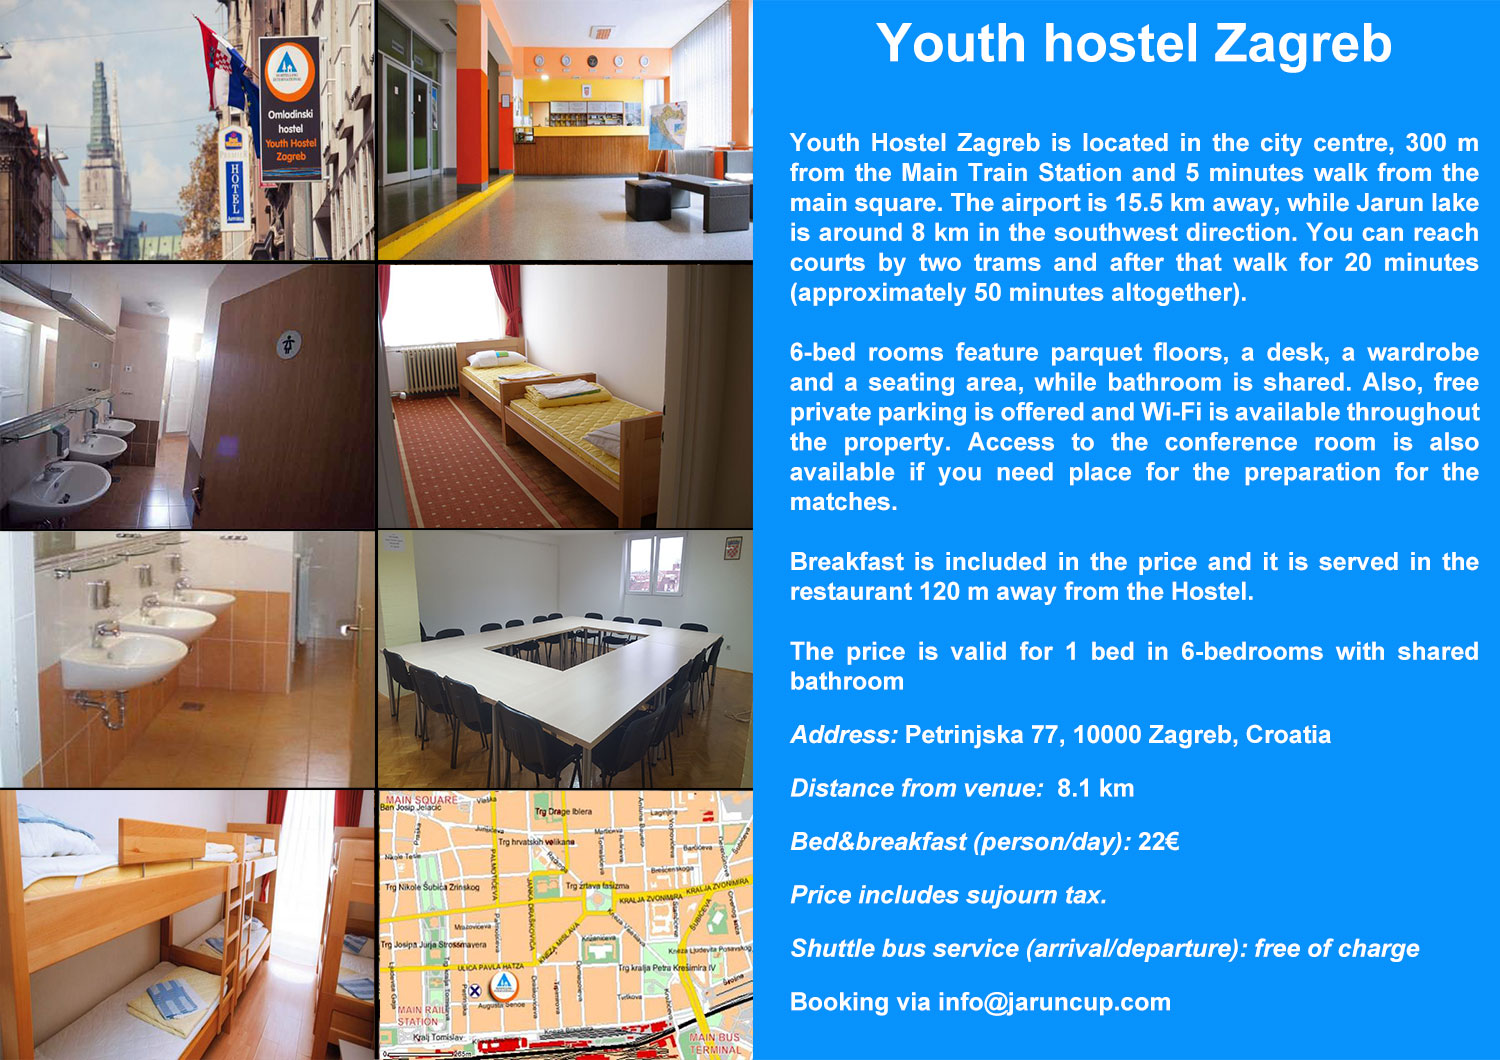 Youth hostel Zagreb accommodation